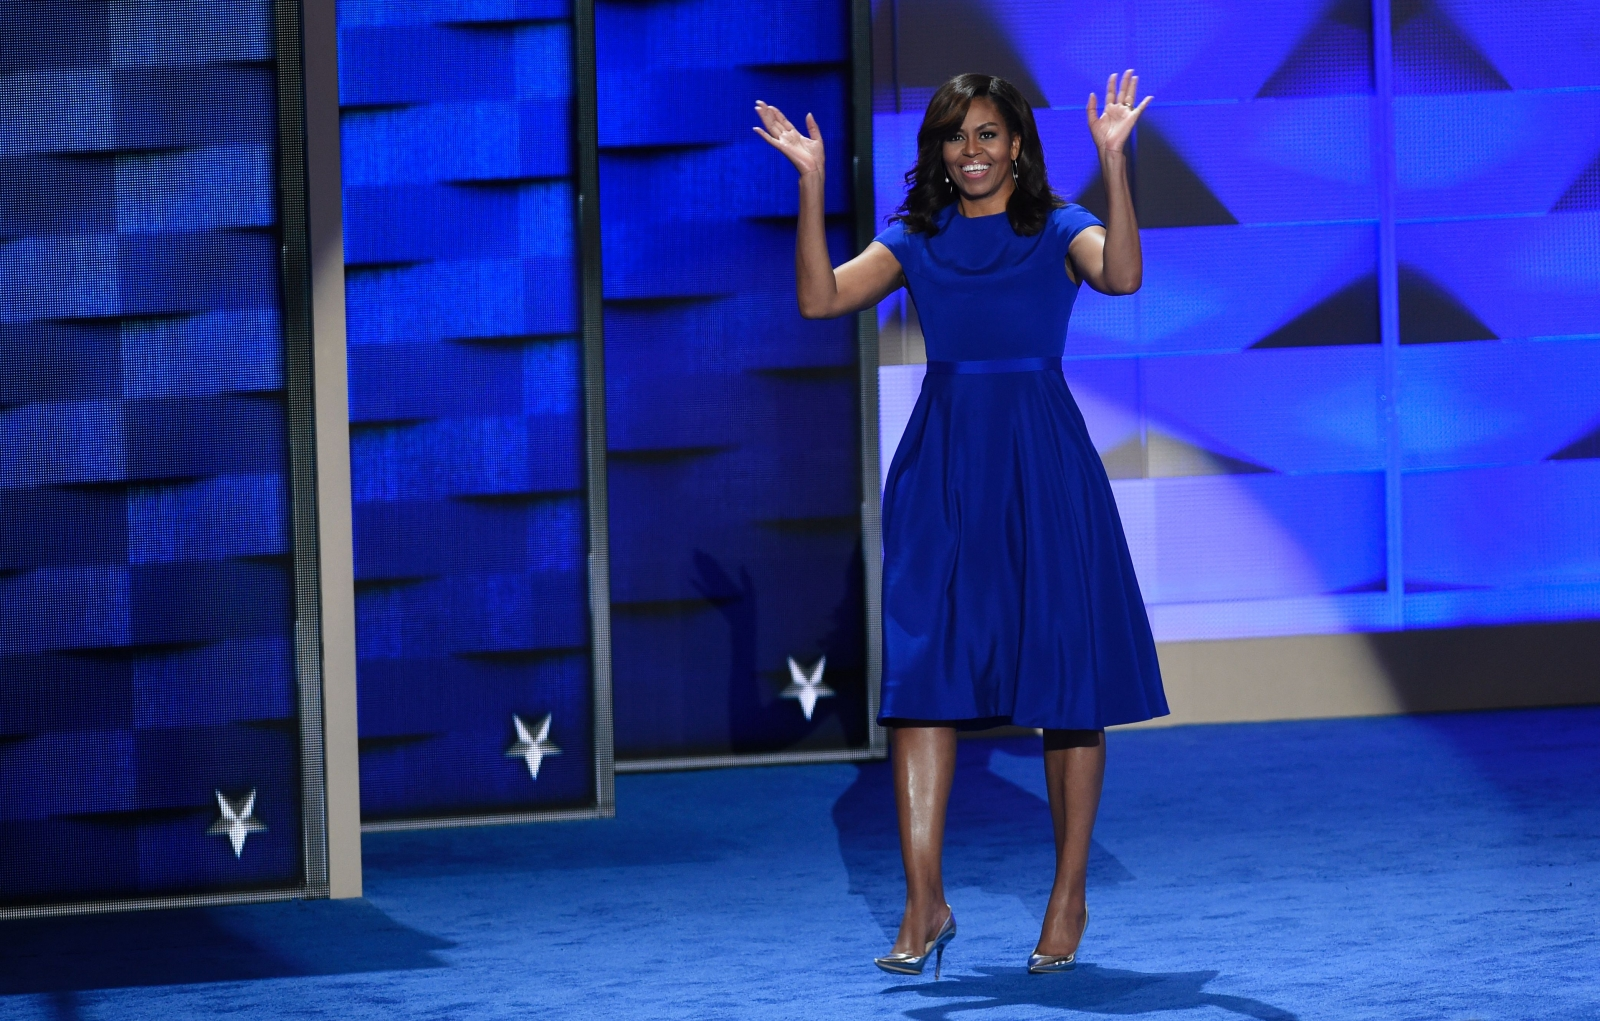 michelle obama Democratic National Convention